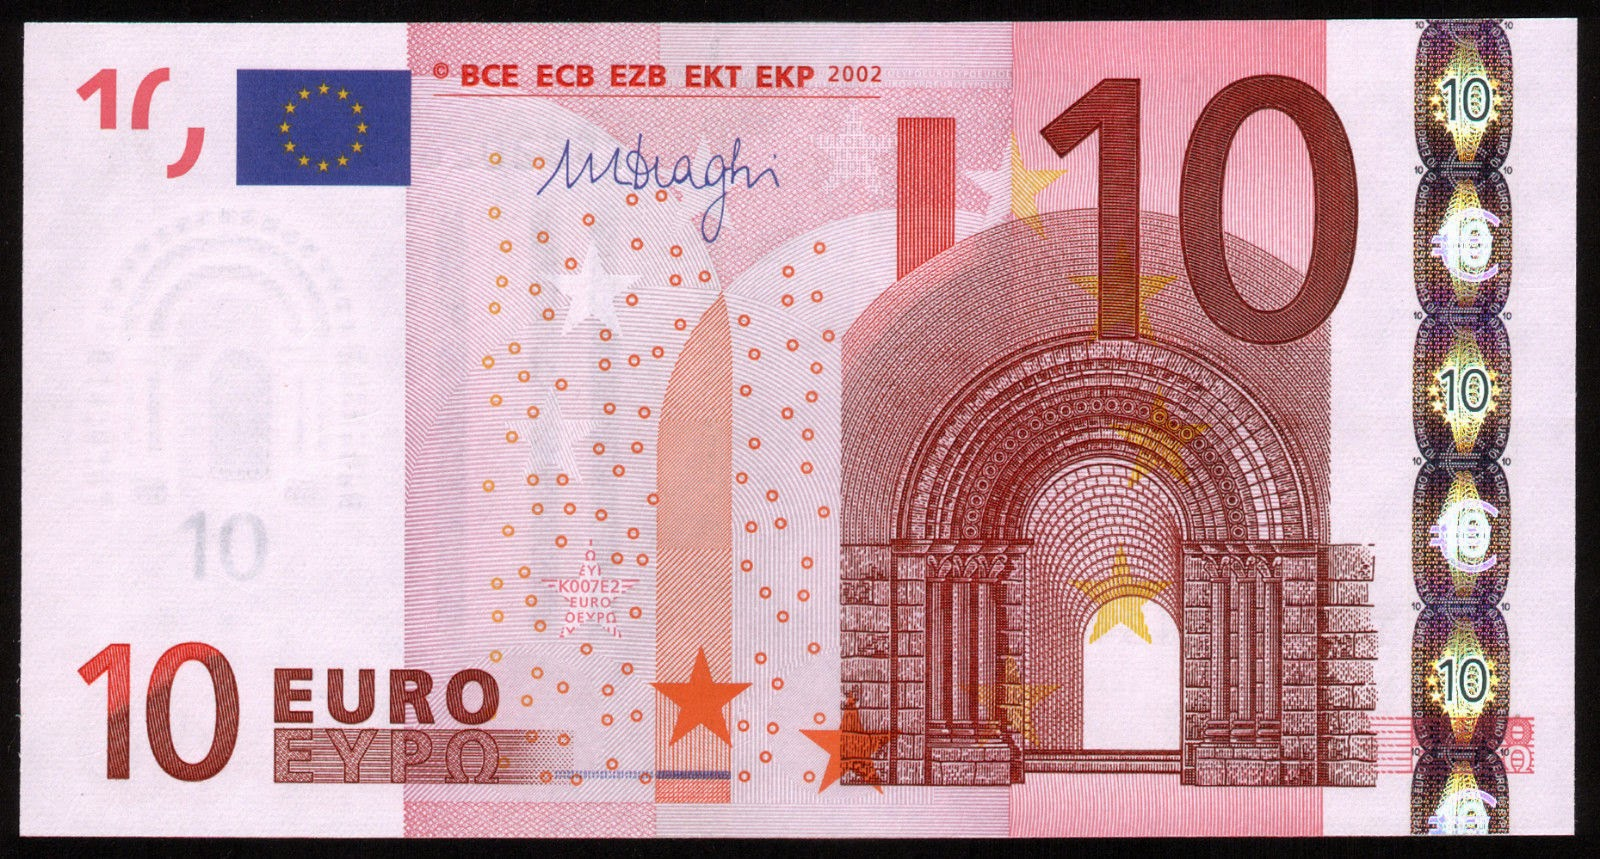 10 euro banknote